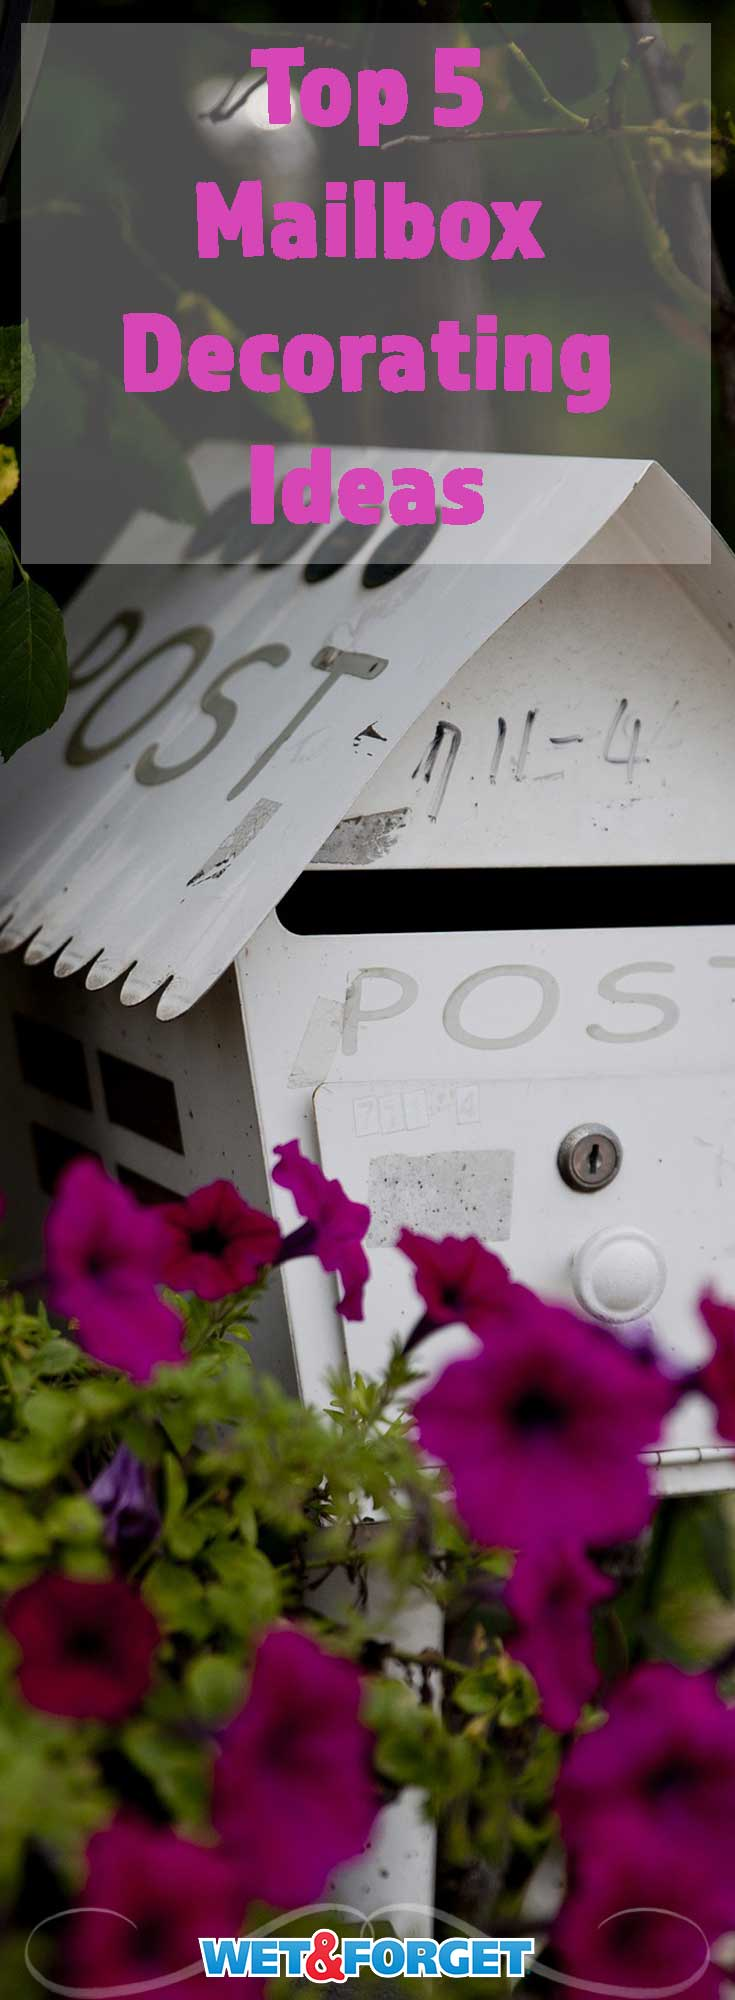 Boost your curb appeal with these 5 mailbox decorating ideas!